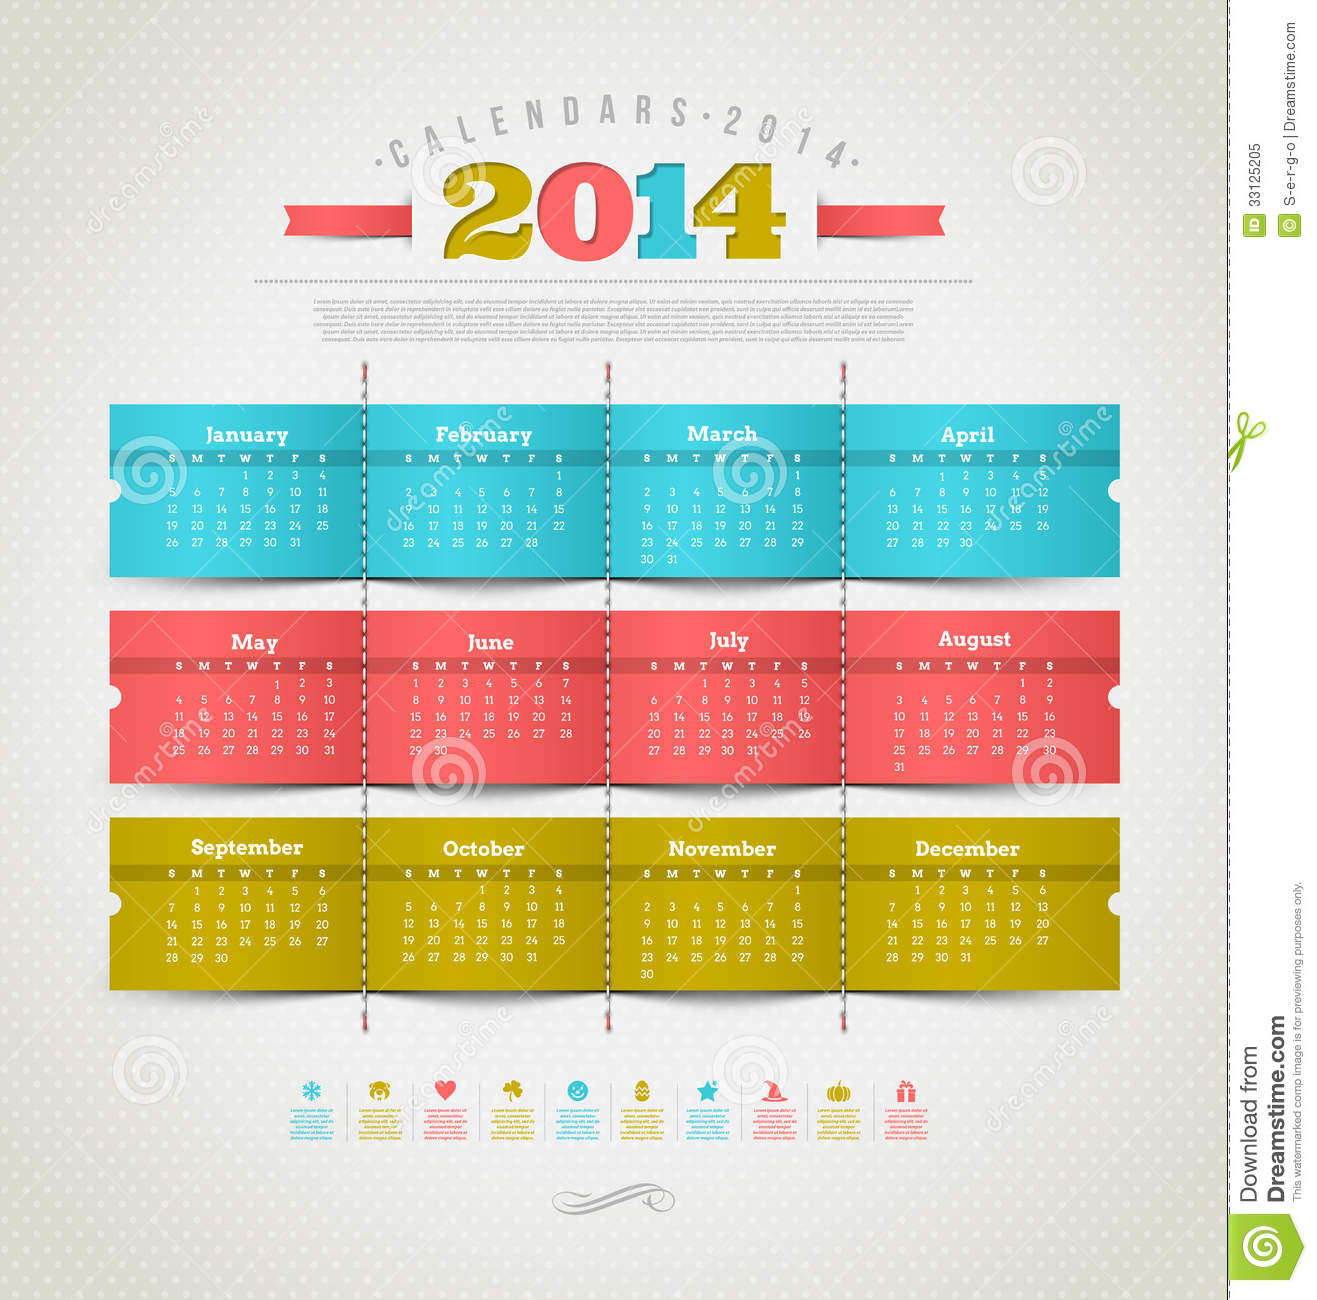 Calendar of 2014 with holidays icons